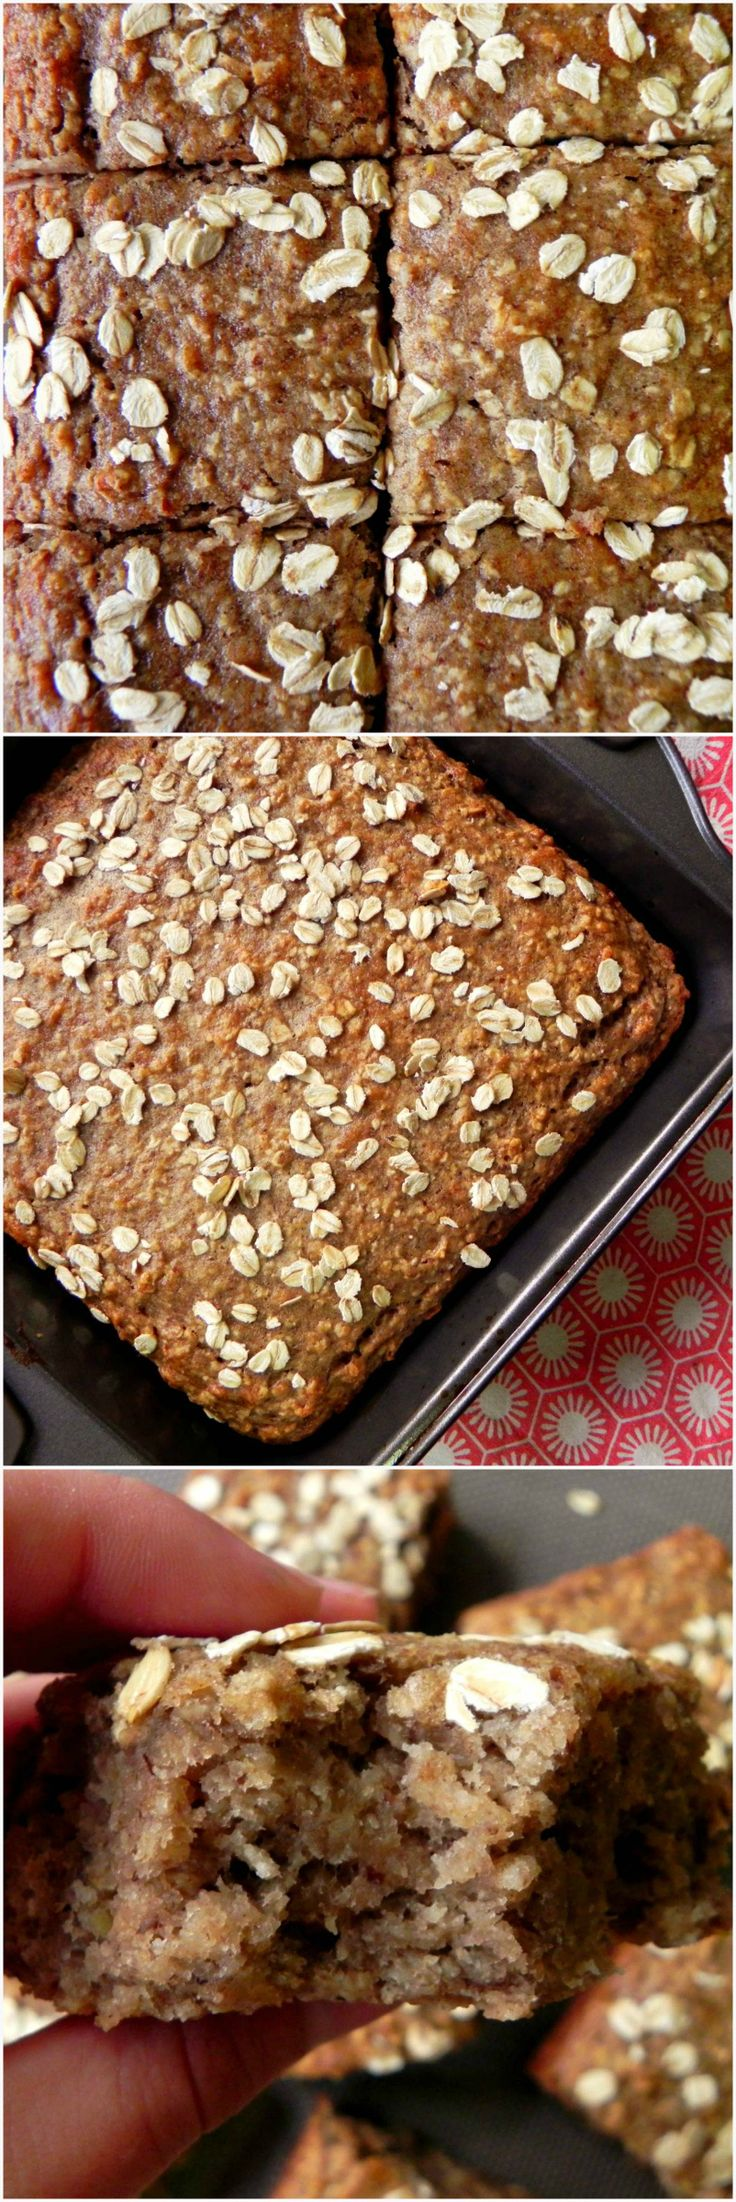 BANANA & OAT BREAKFAST CAKE {HEALTHY VEGAN OATMEAL BANANA BREAD} From Ceara's kitchen! YUM!!! Would be absolutely delicious and so moist!! healthier than typical banana bread too and easy to make!! #vegan #bananabread (comment by @paigeydoll1 )